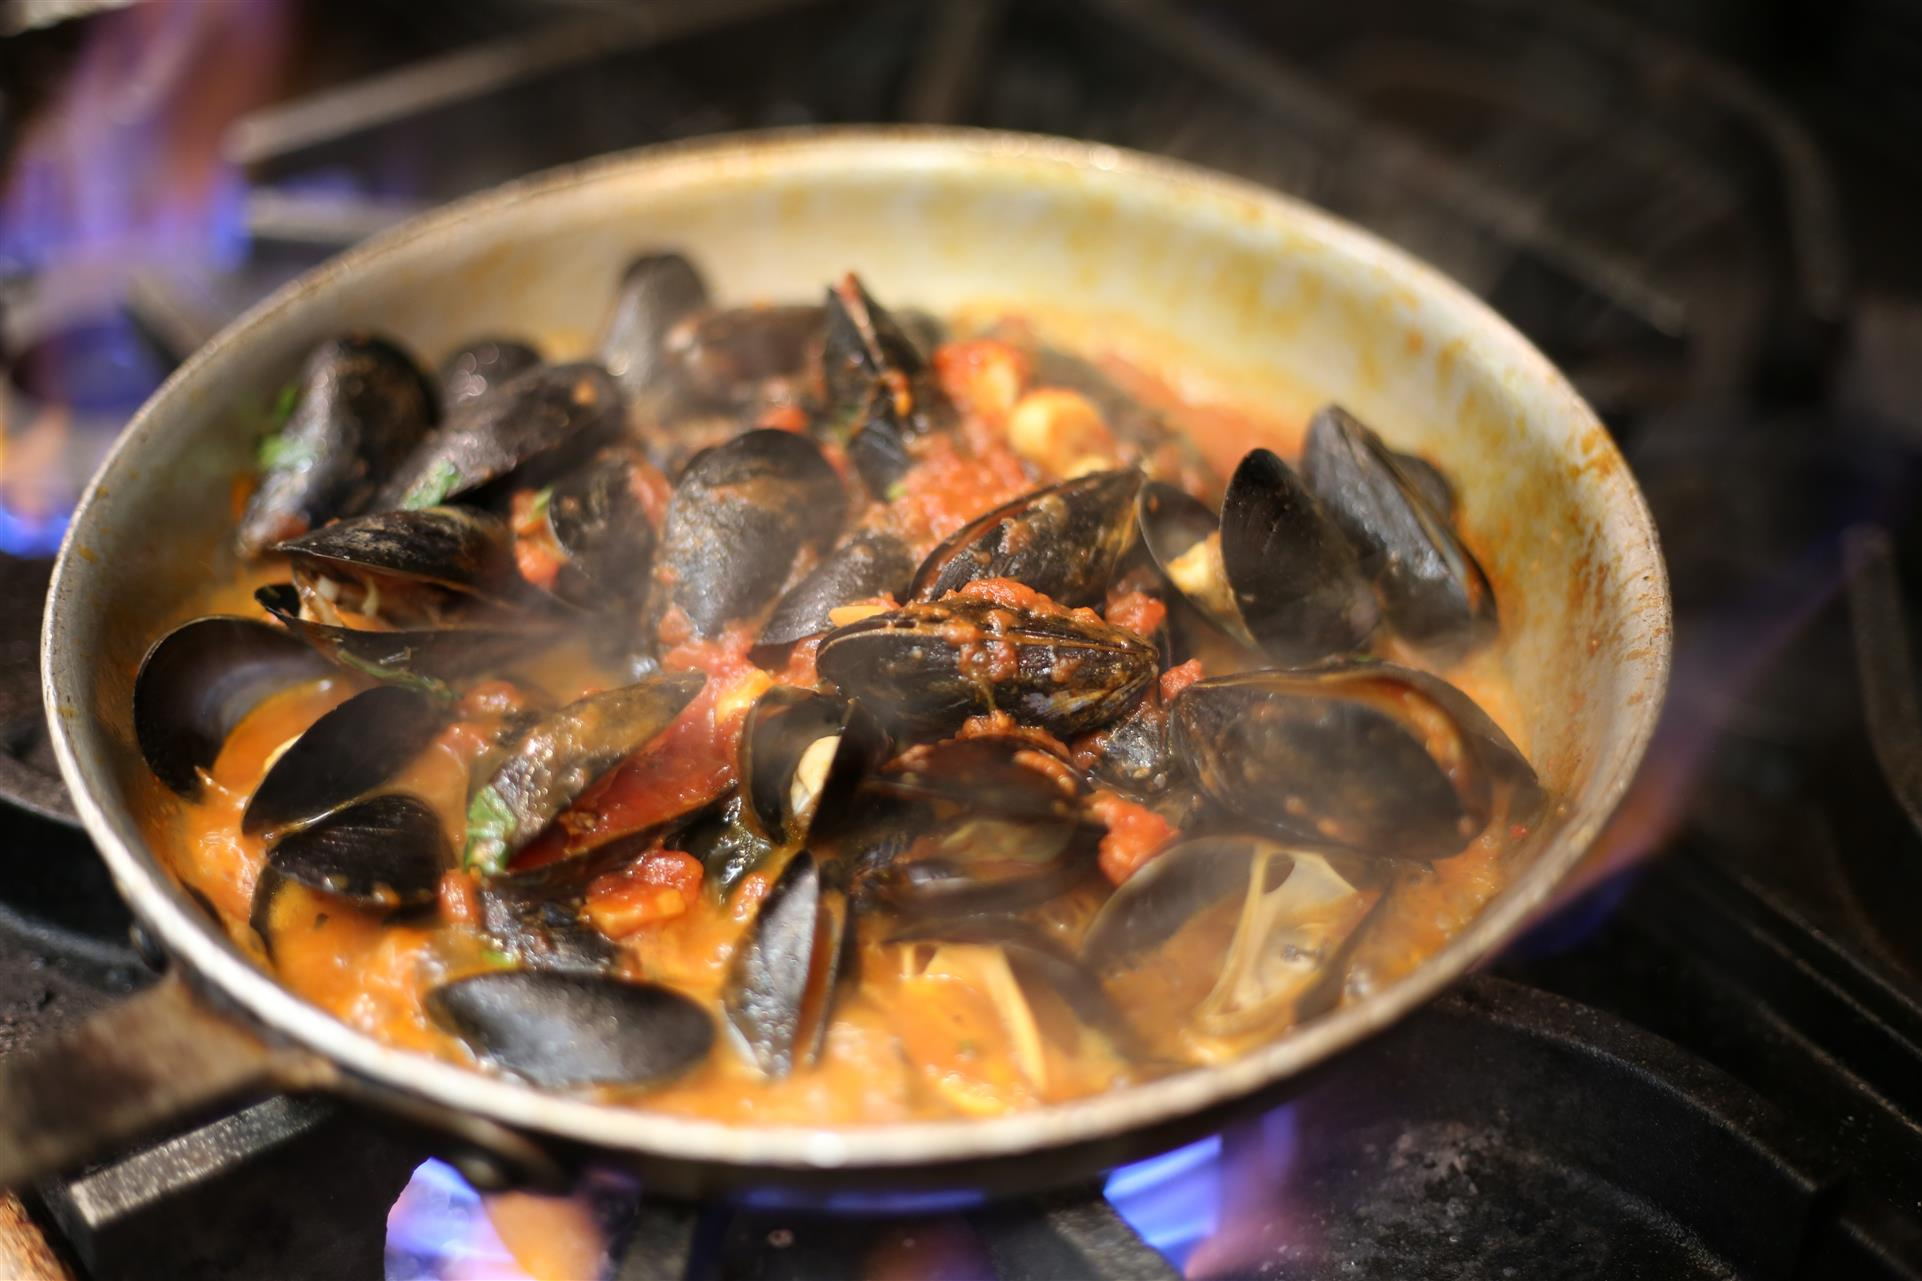 Mussels Marinara being sauteed in a pan.